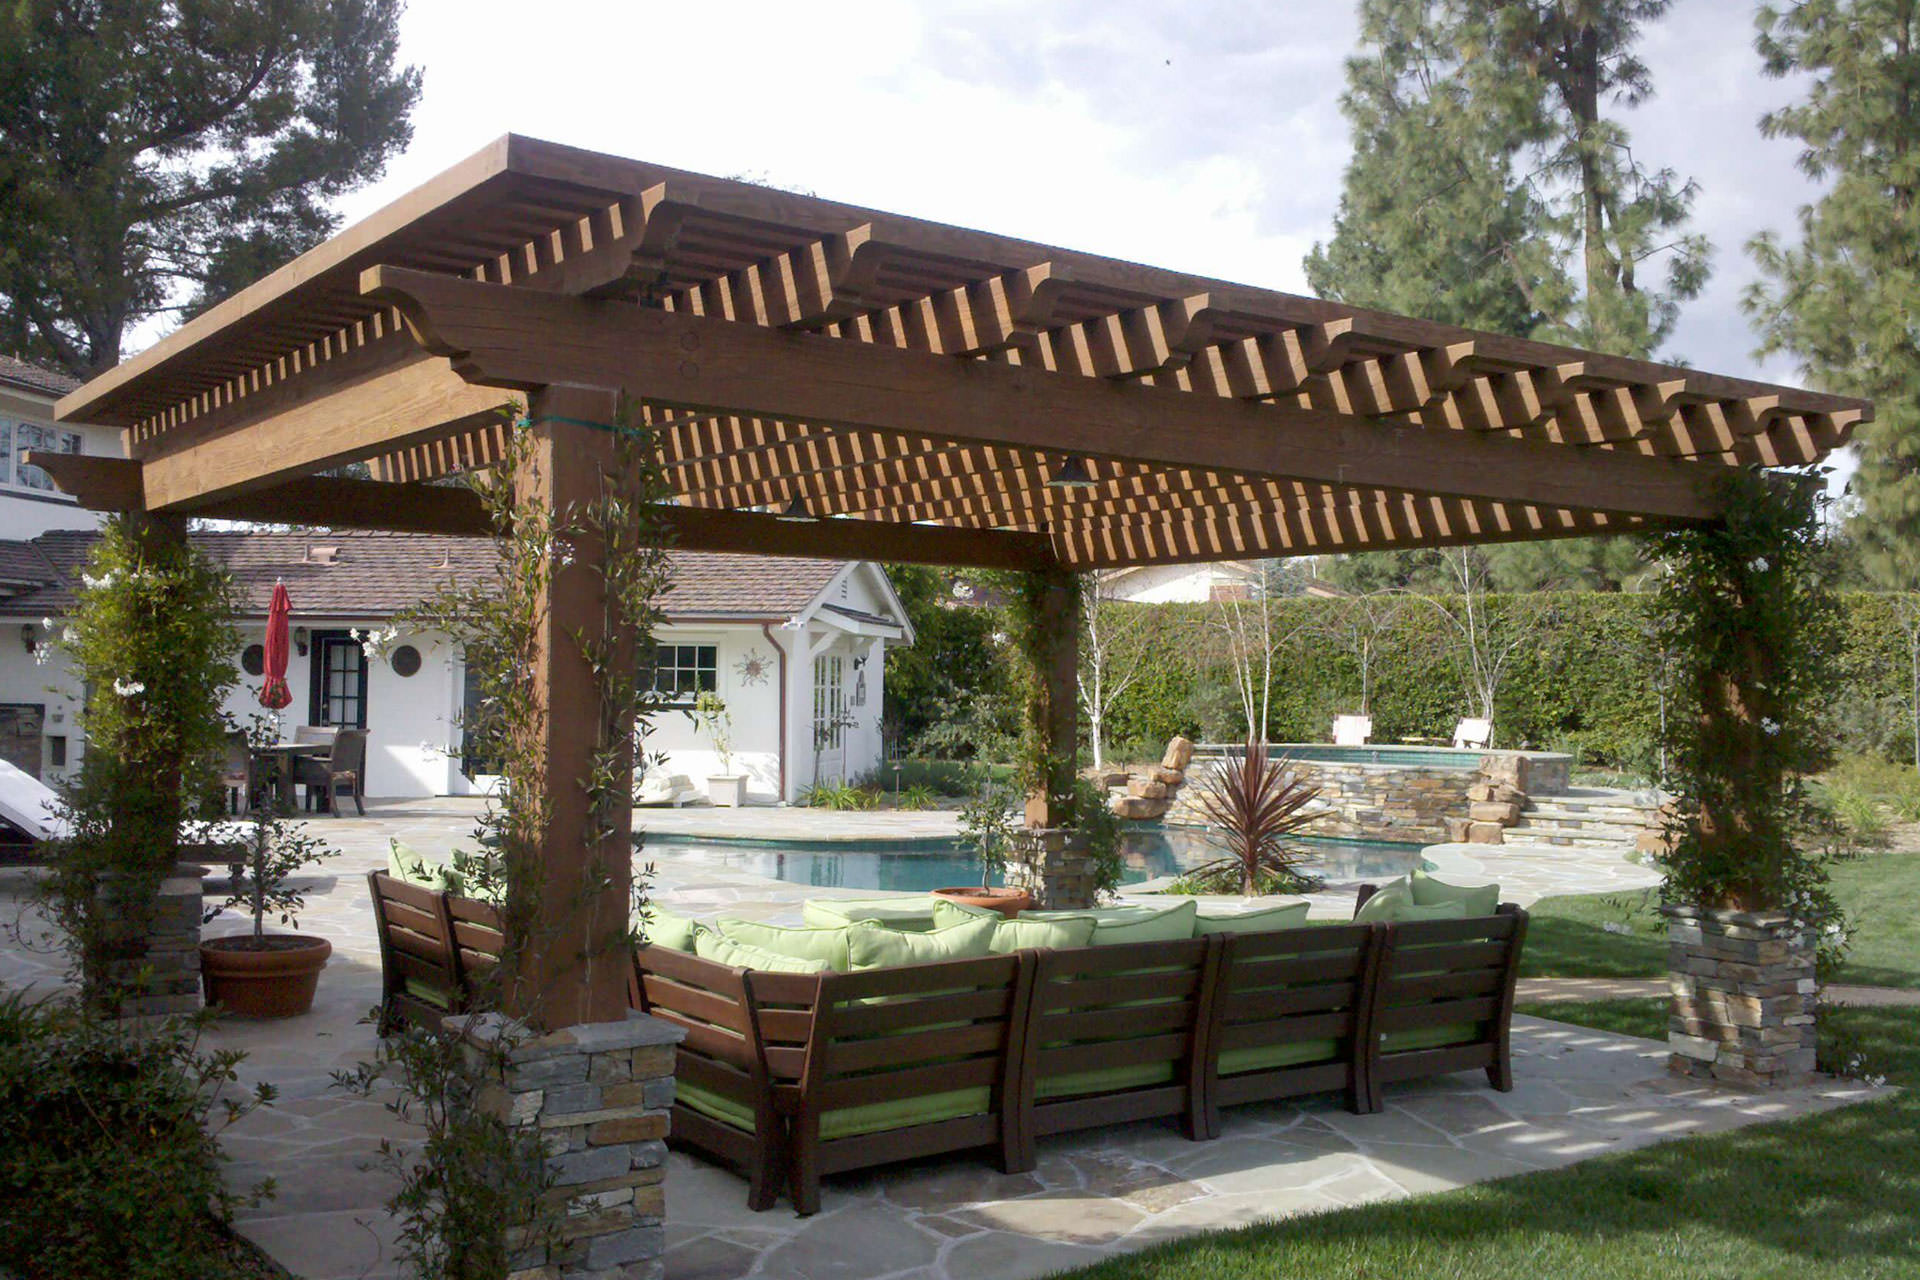 Pergola Roof Ideas What You Need To Know  Shadefx Canopies. Circle Lighting. Half Bath Decor. Stainless Steel Hoods. A American Electric. Ralph Lauren Bedding. Carrera Subway Tile. Living Room Chandelier. T&d Furniture